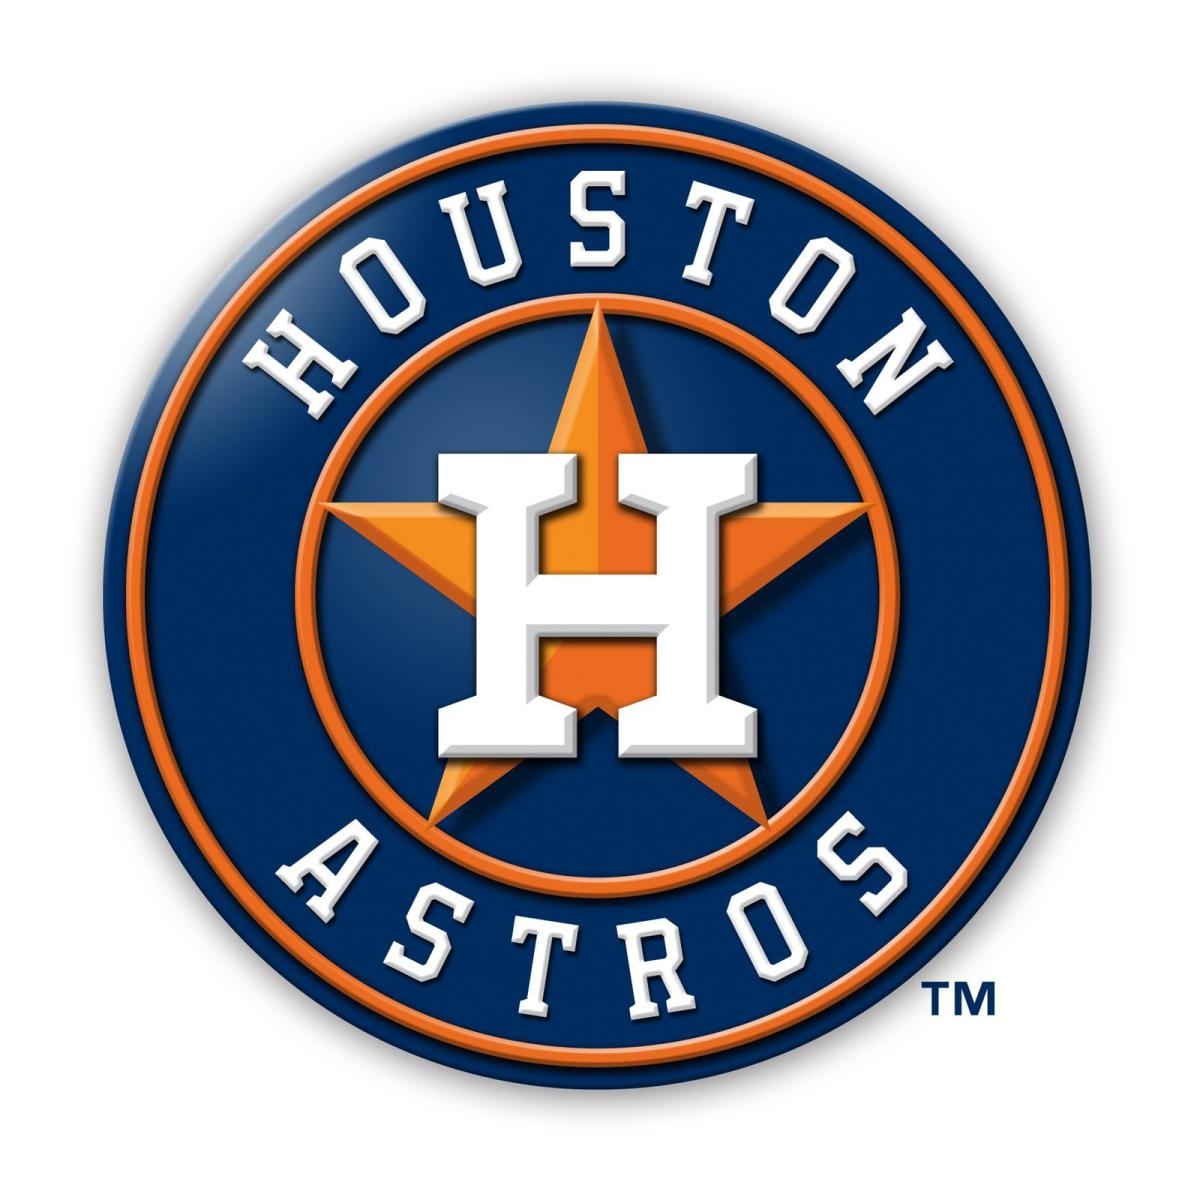 Houston Astros are 'Going to Disney World' for World Series VictoryParade